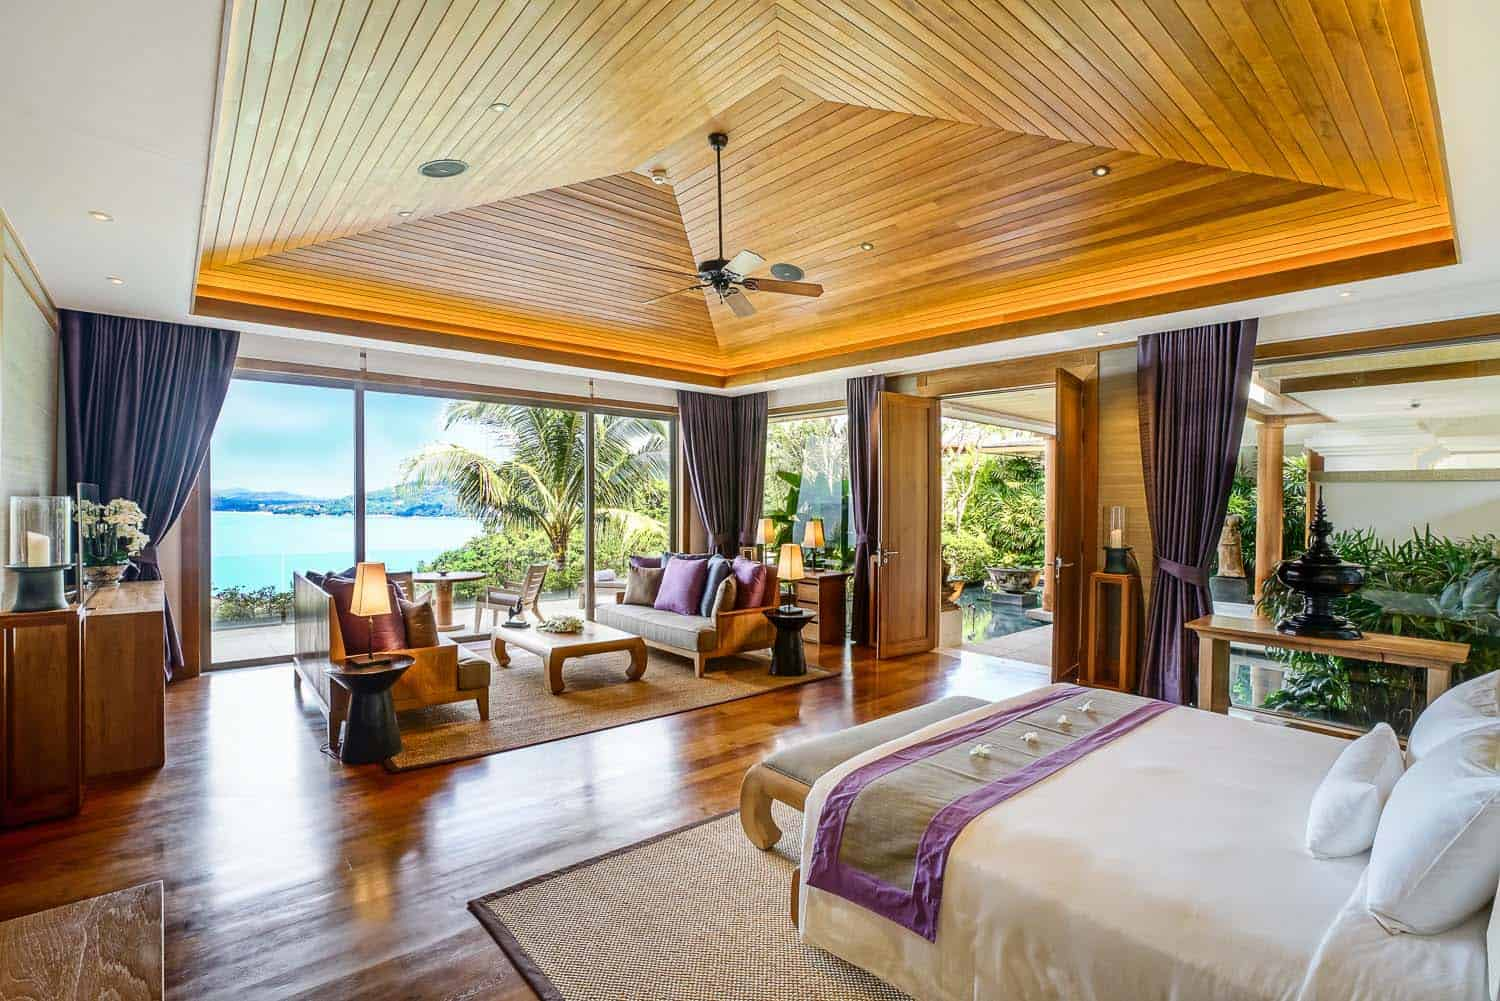 Luxurious Oceanfront Retreat Thailand-11-1 Kindesign